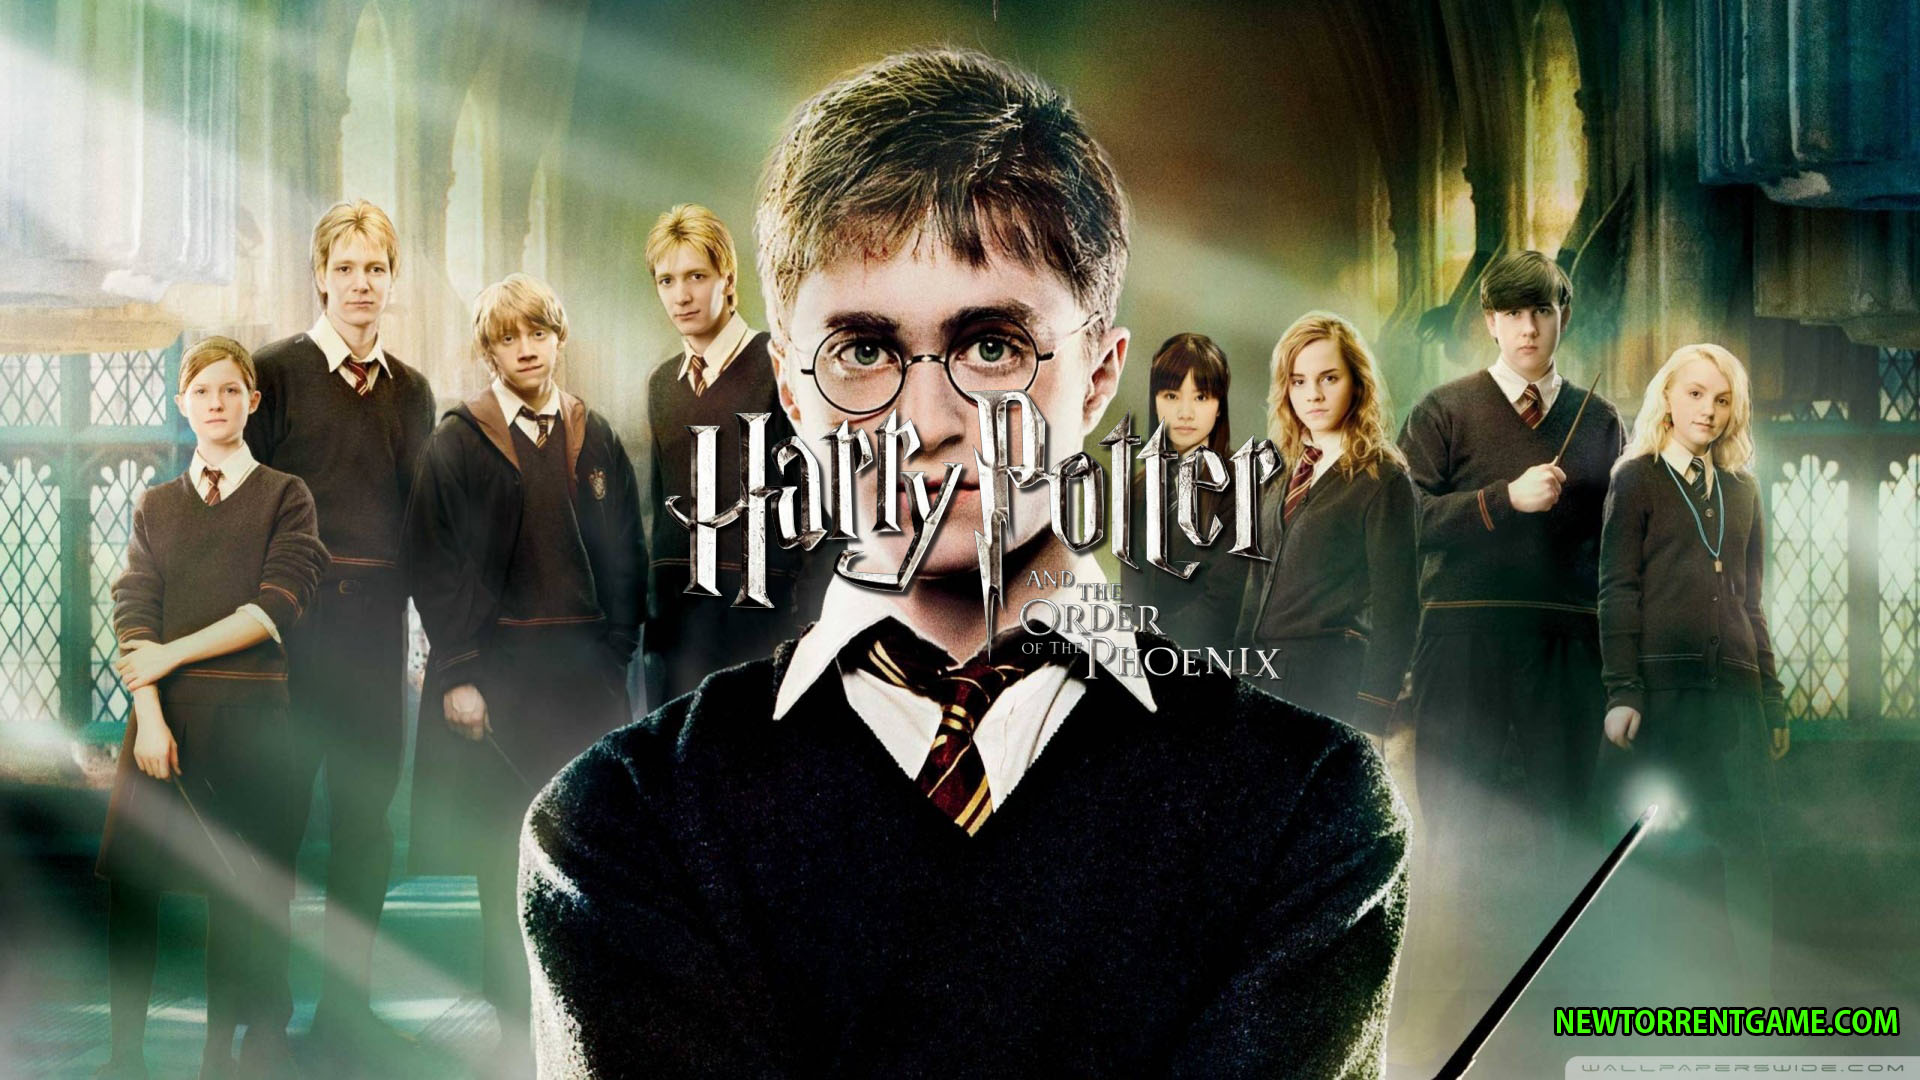 Download Free Harry potter and the order of the phoenix ...